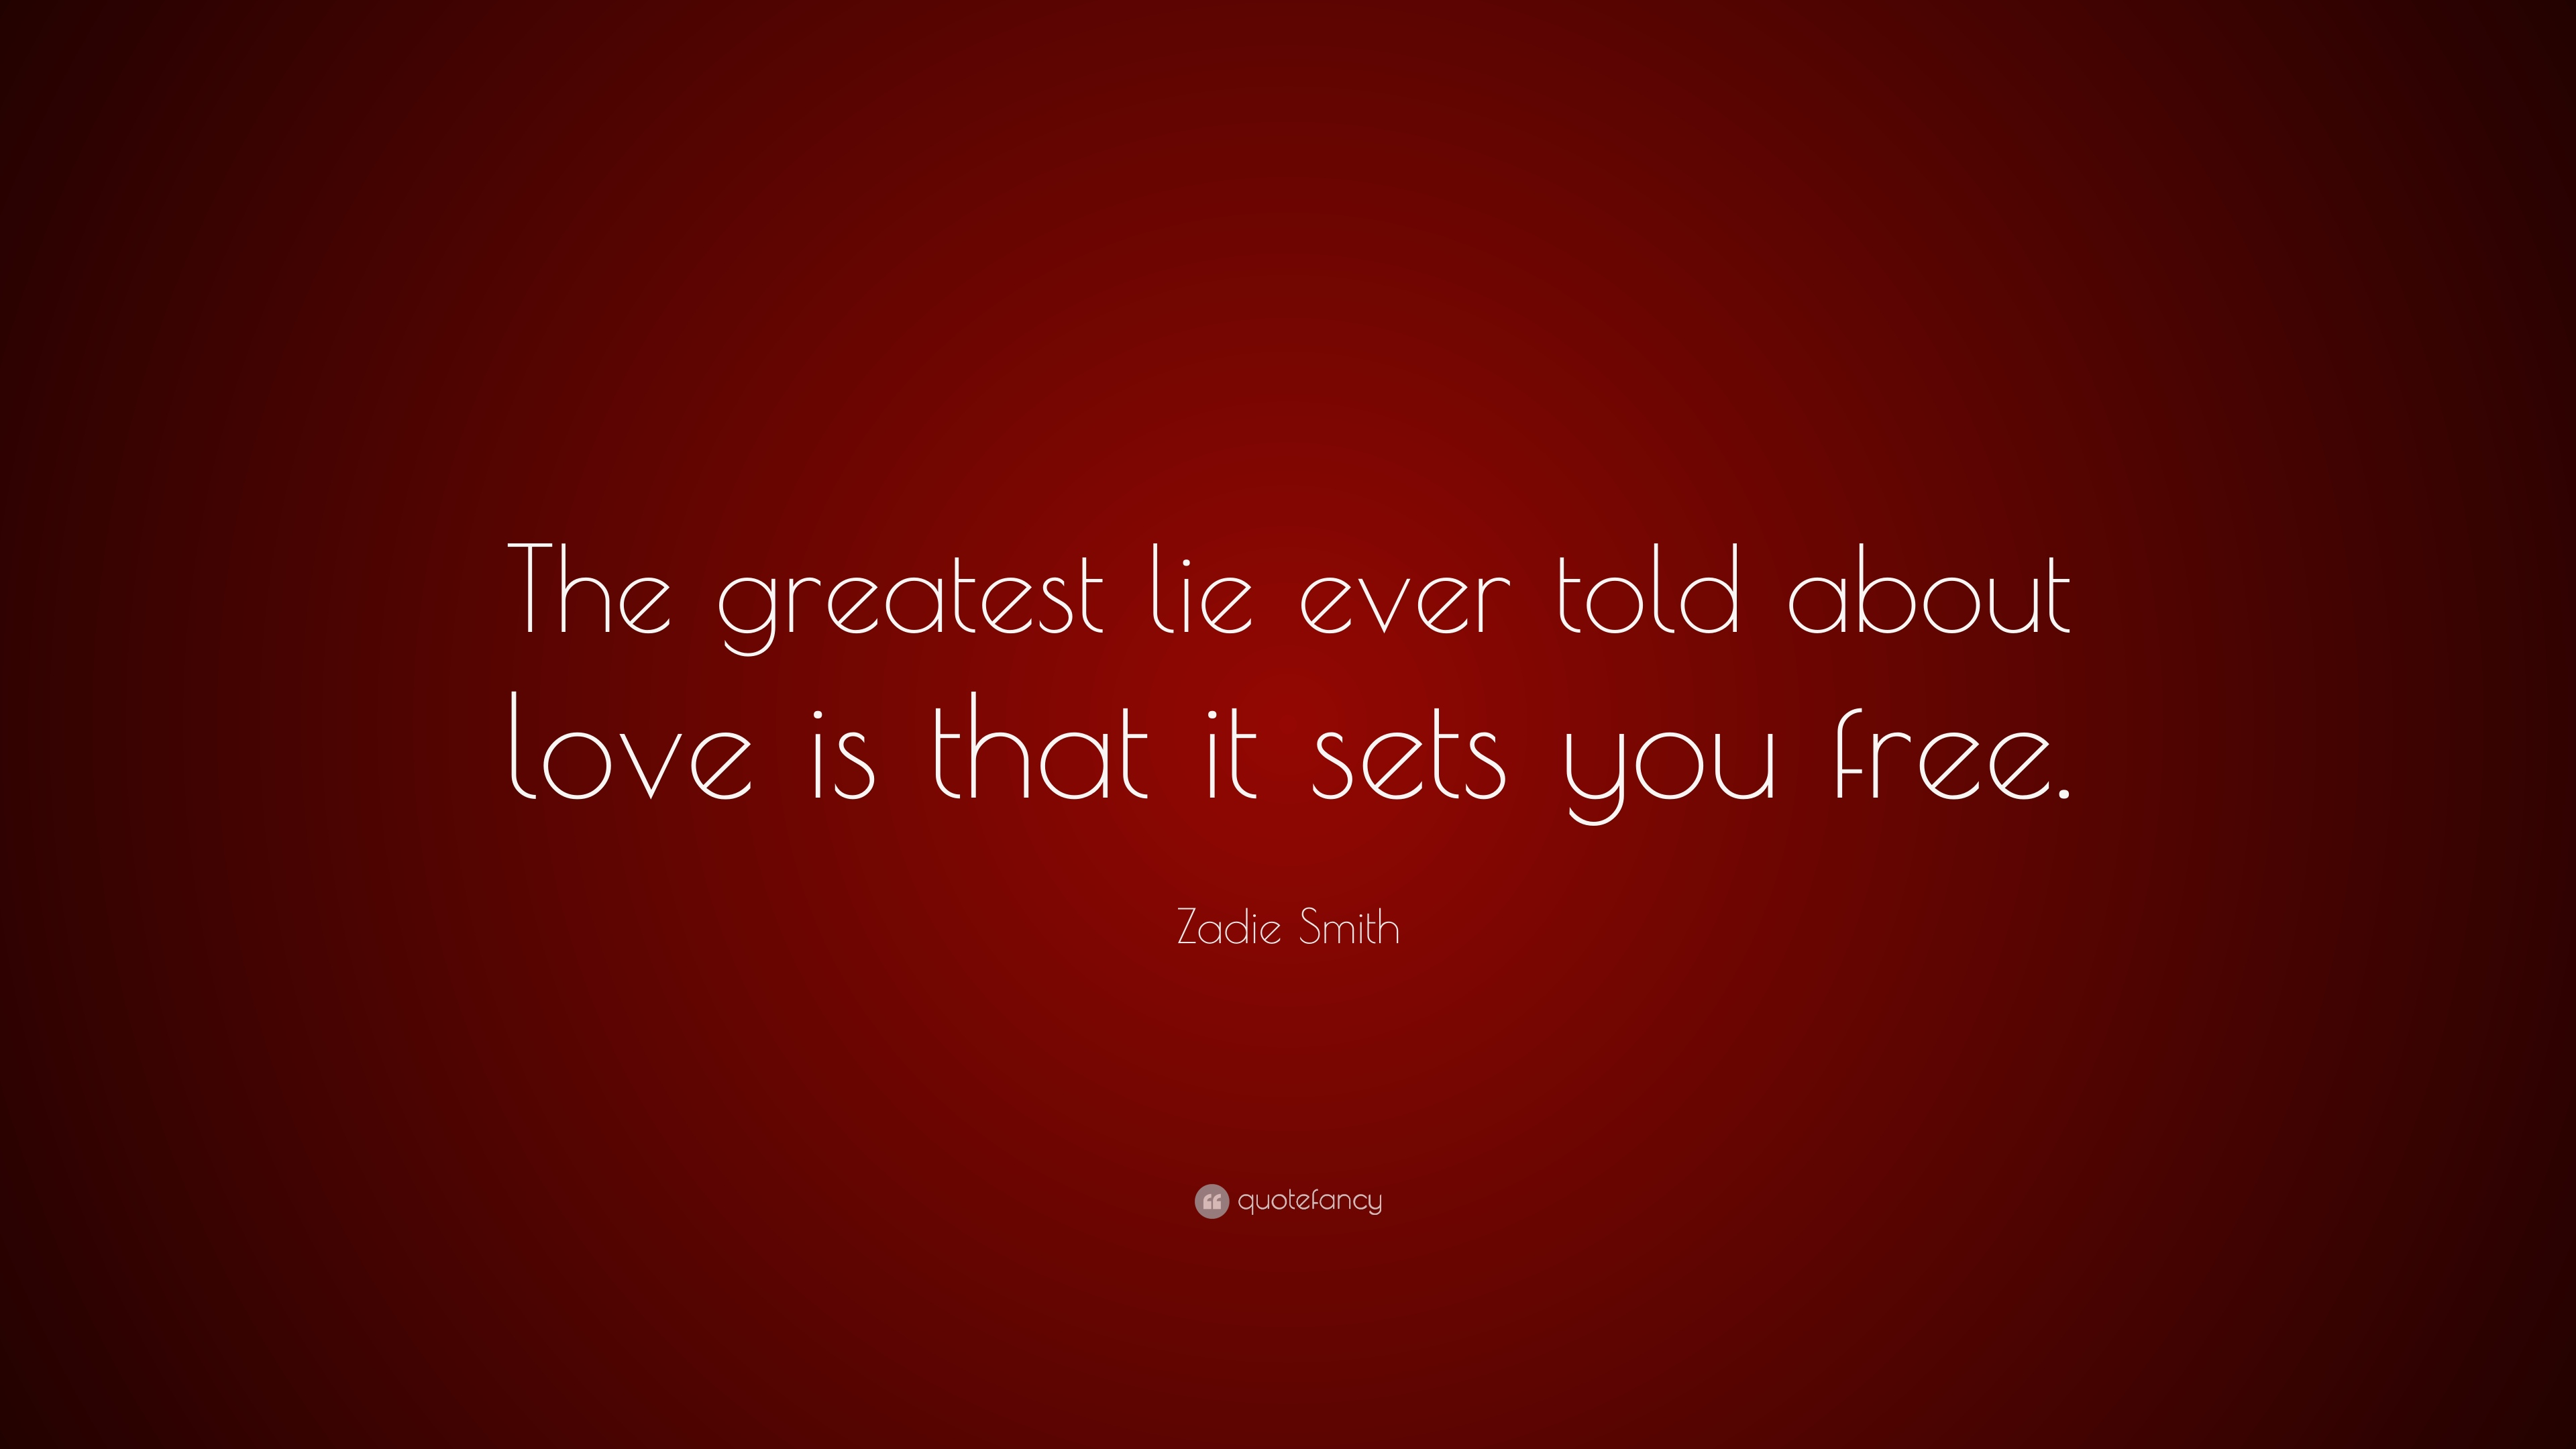 Zadie Smith Quote The Greatest Lie Ever Told About Love Is That It